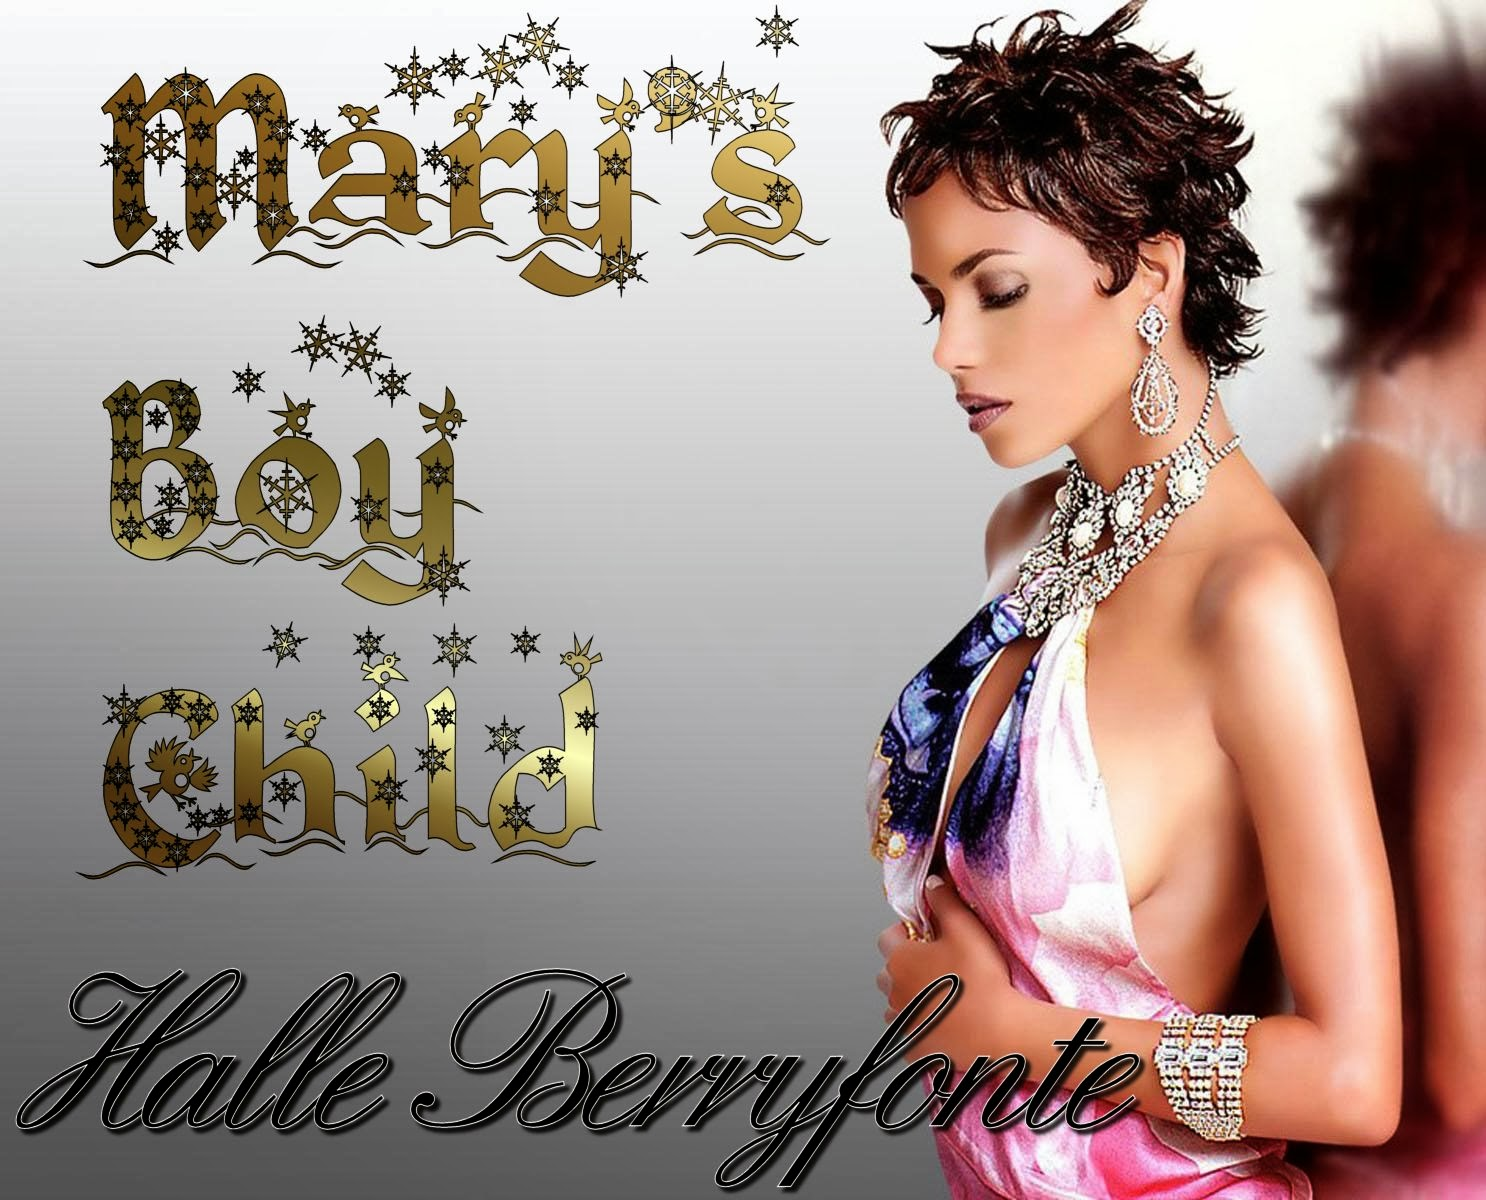 Halle Berryfonte - Mary's Boy Child